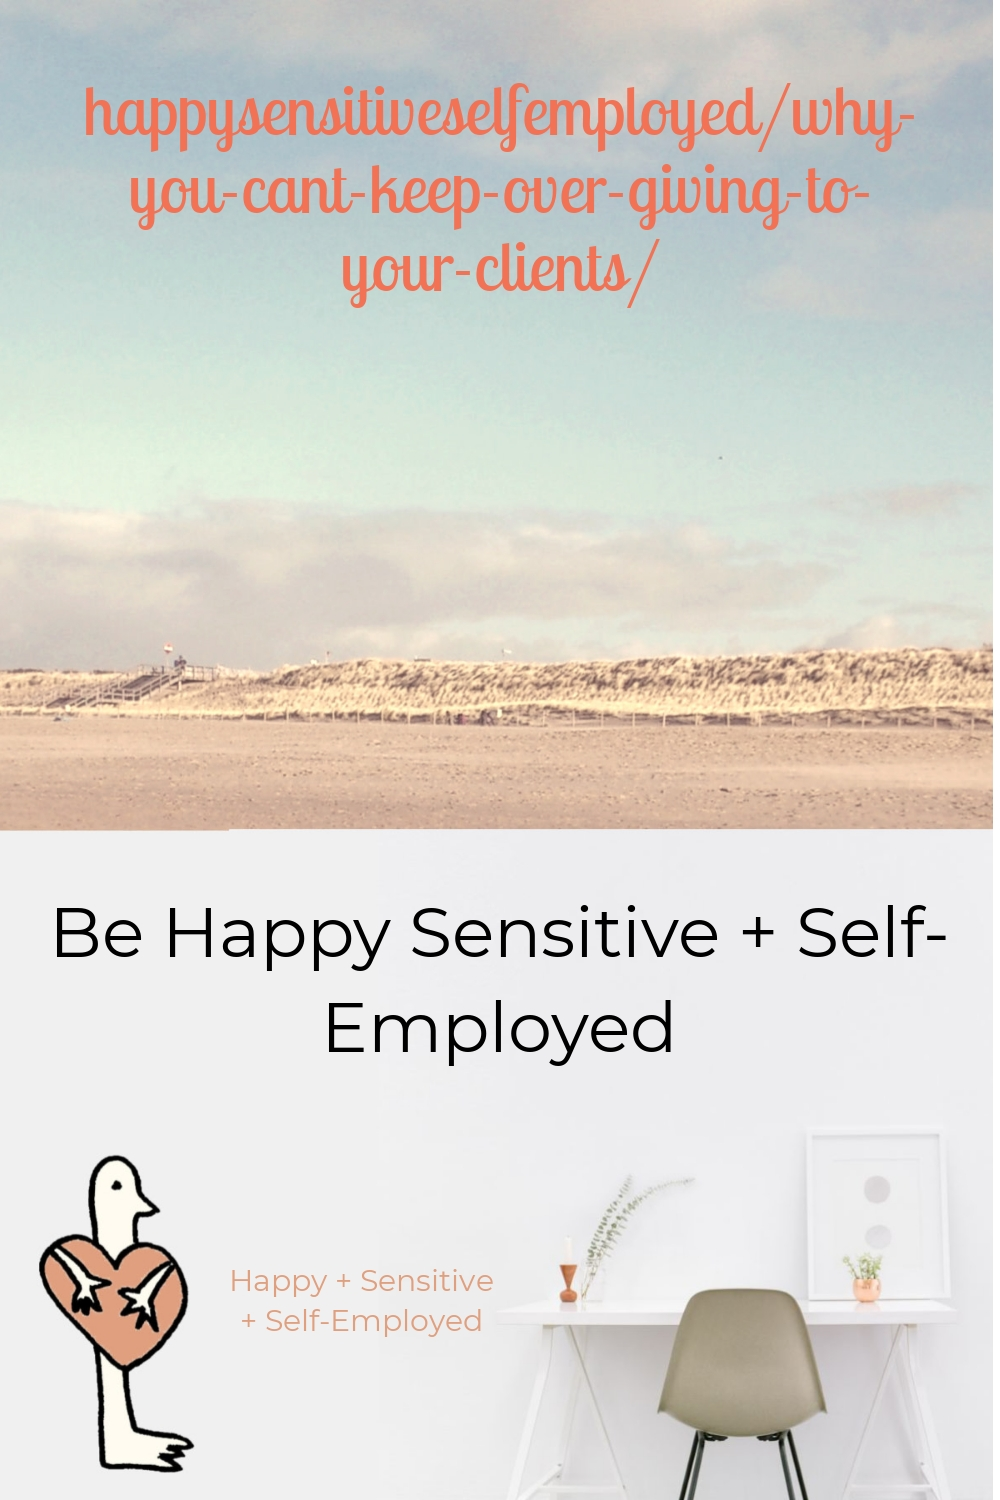 happysensitiveselfemployed/why-you-cant-keep-over-giving-to-your-clients/